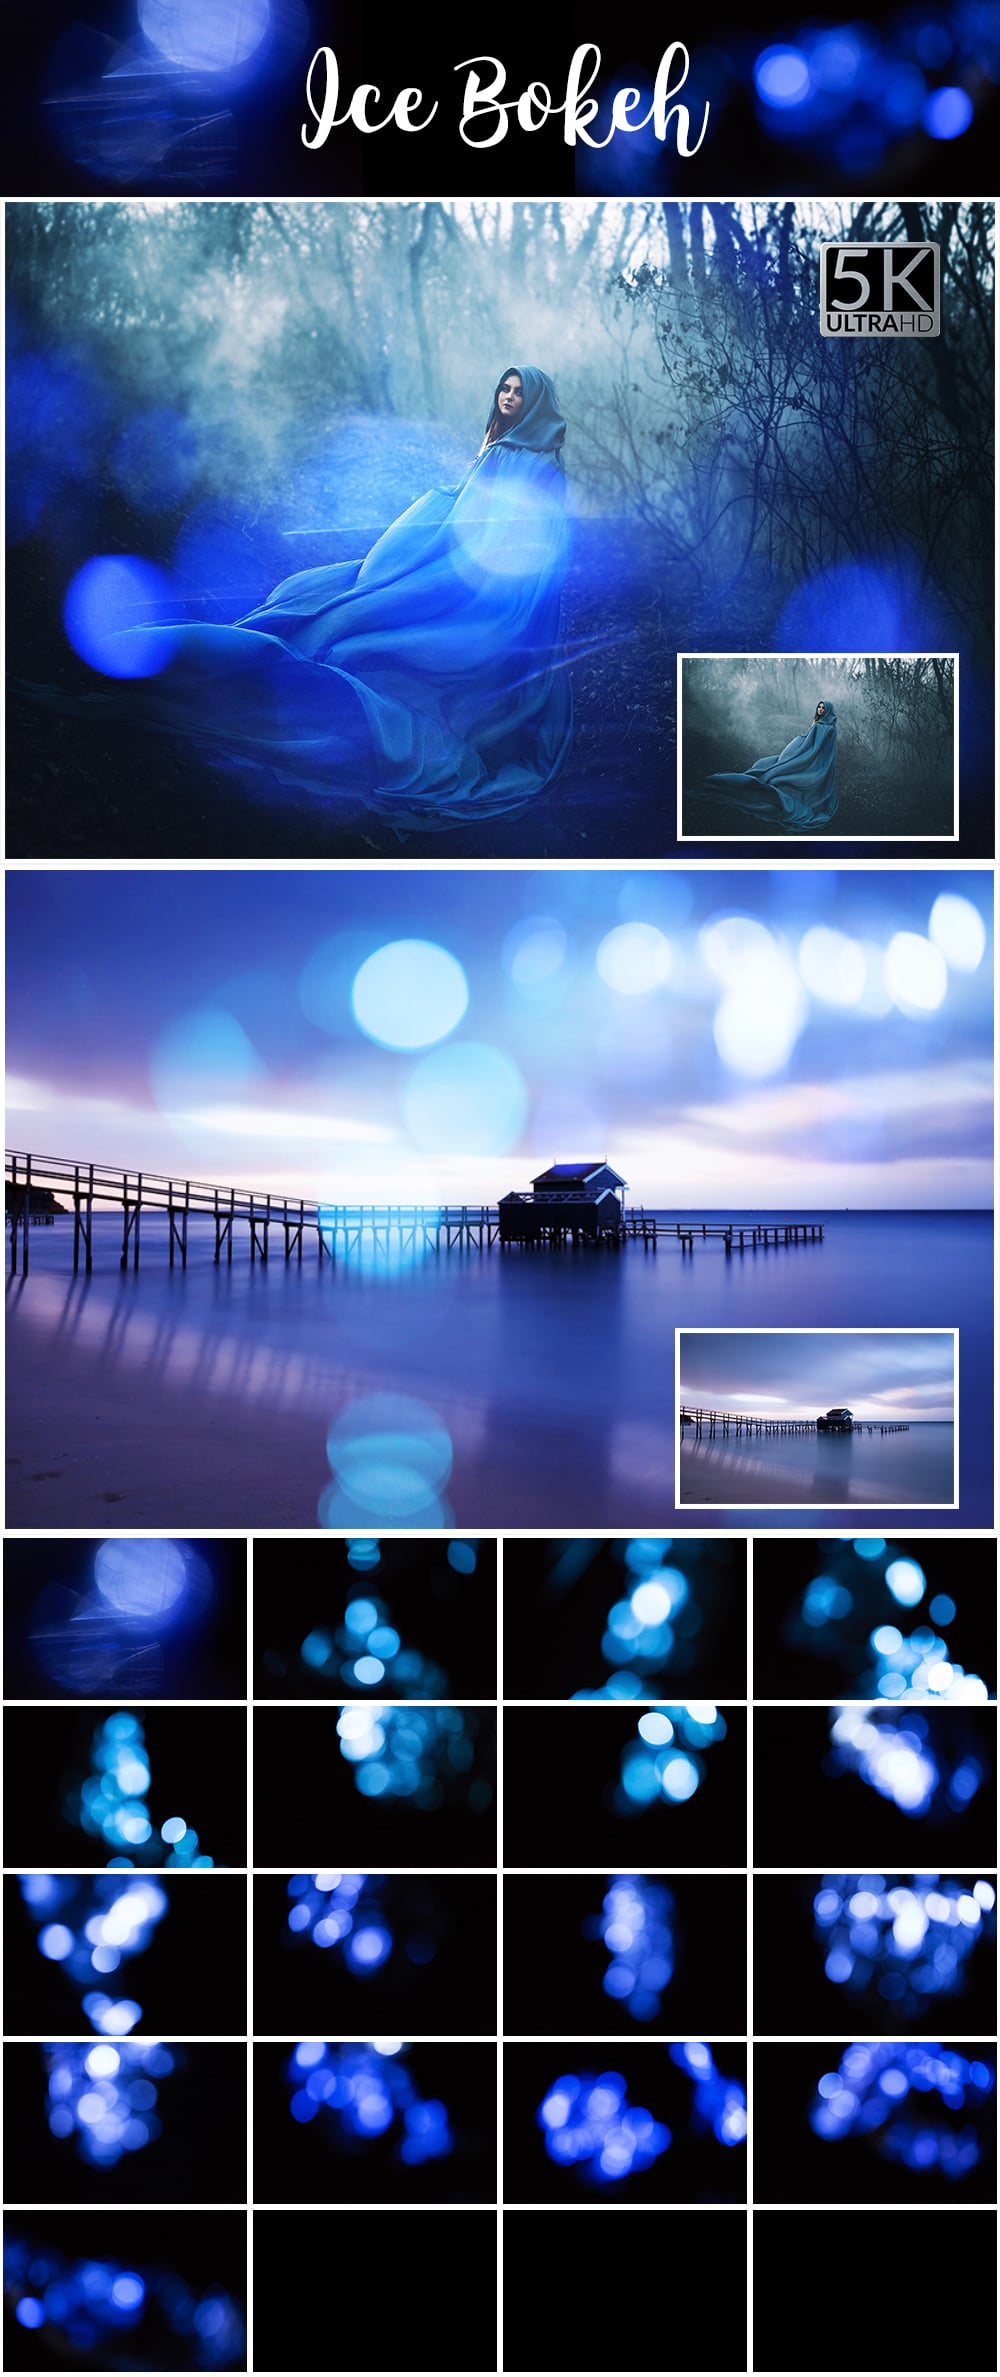 1100 Photoshop Overlays Mega Pack - Extended License - 11 Ice Bokeh